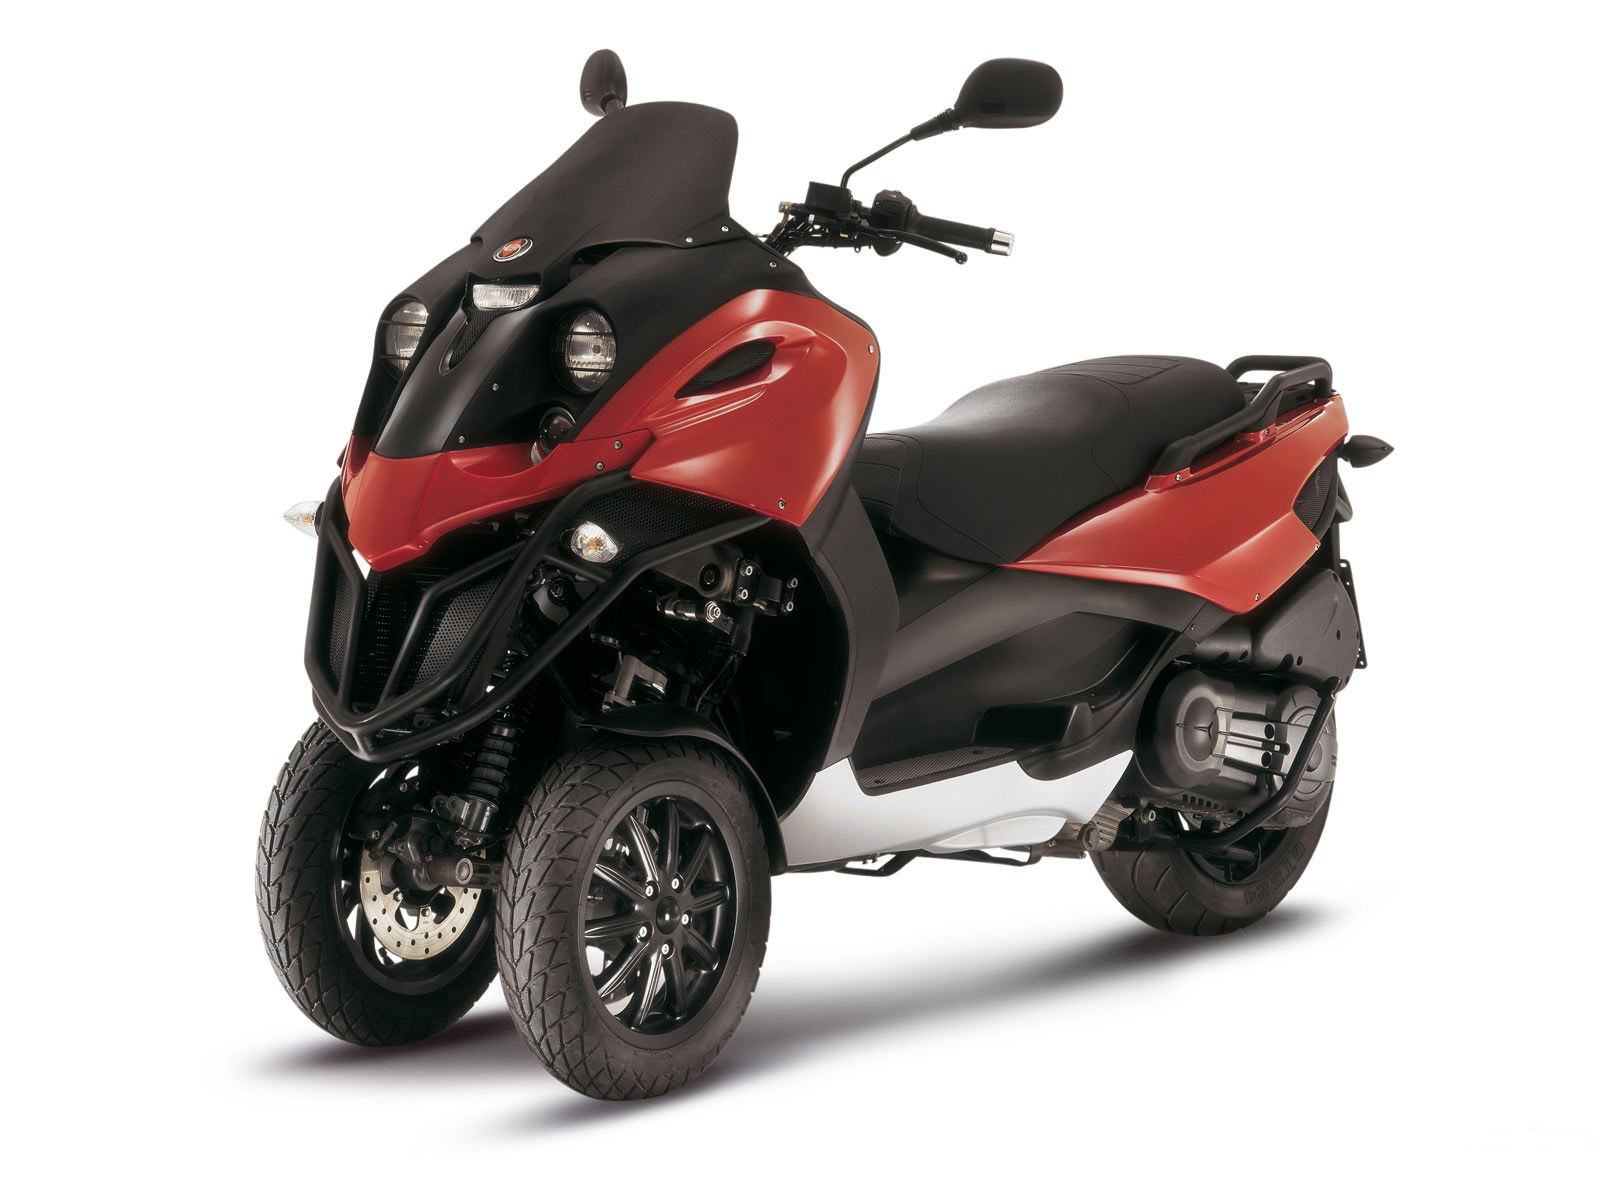 Gilera Fuoco 500 ie 2008 images #74157